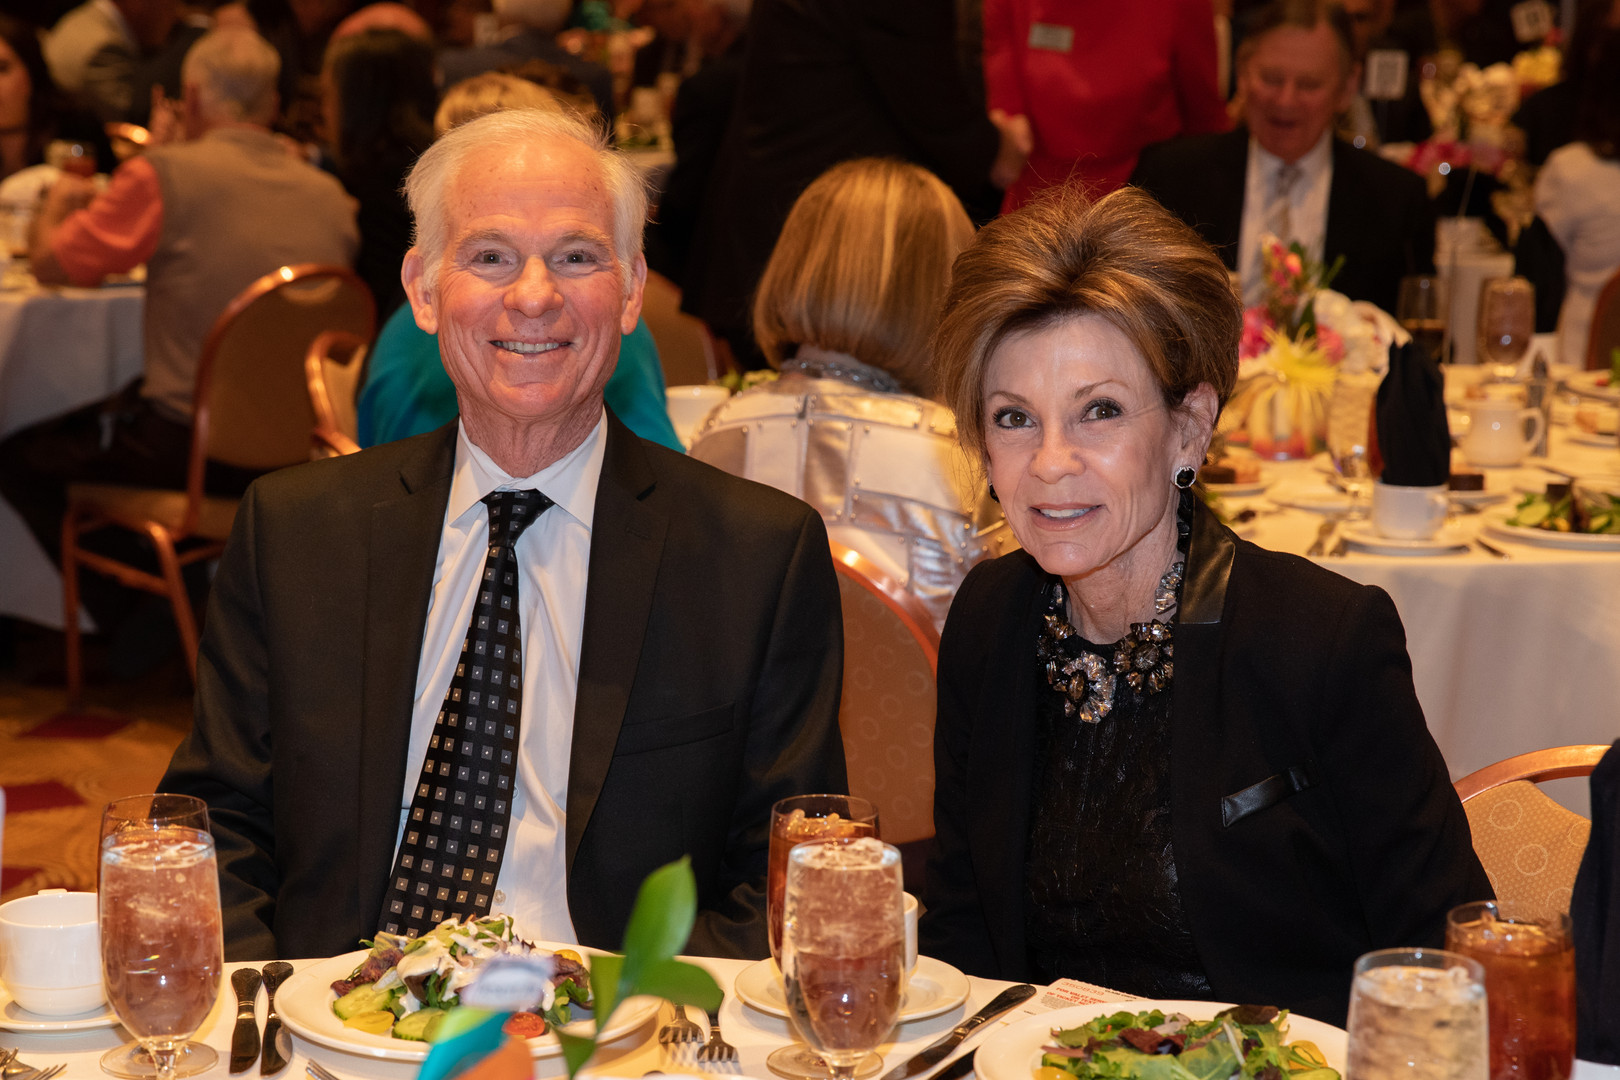 A couple attending the luncheon